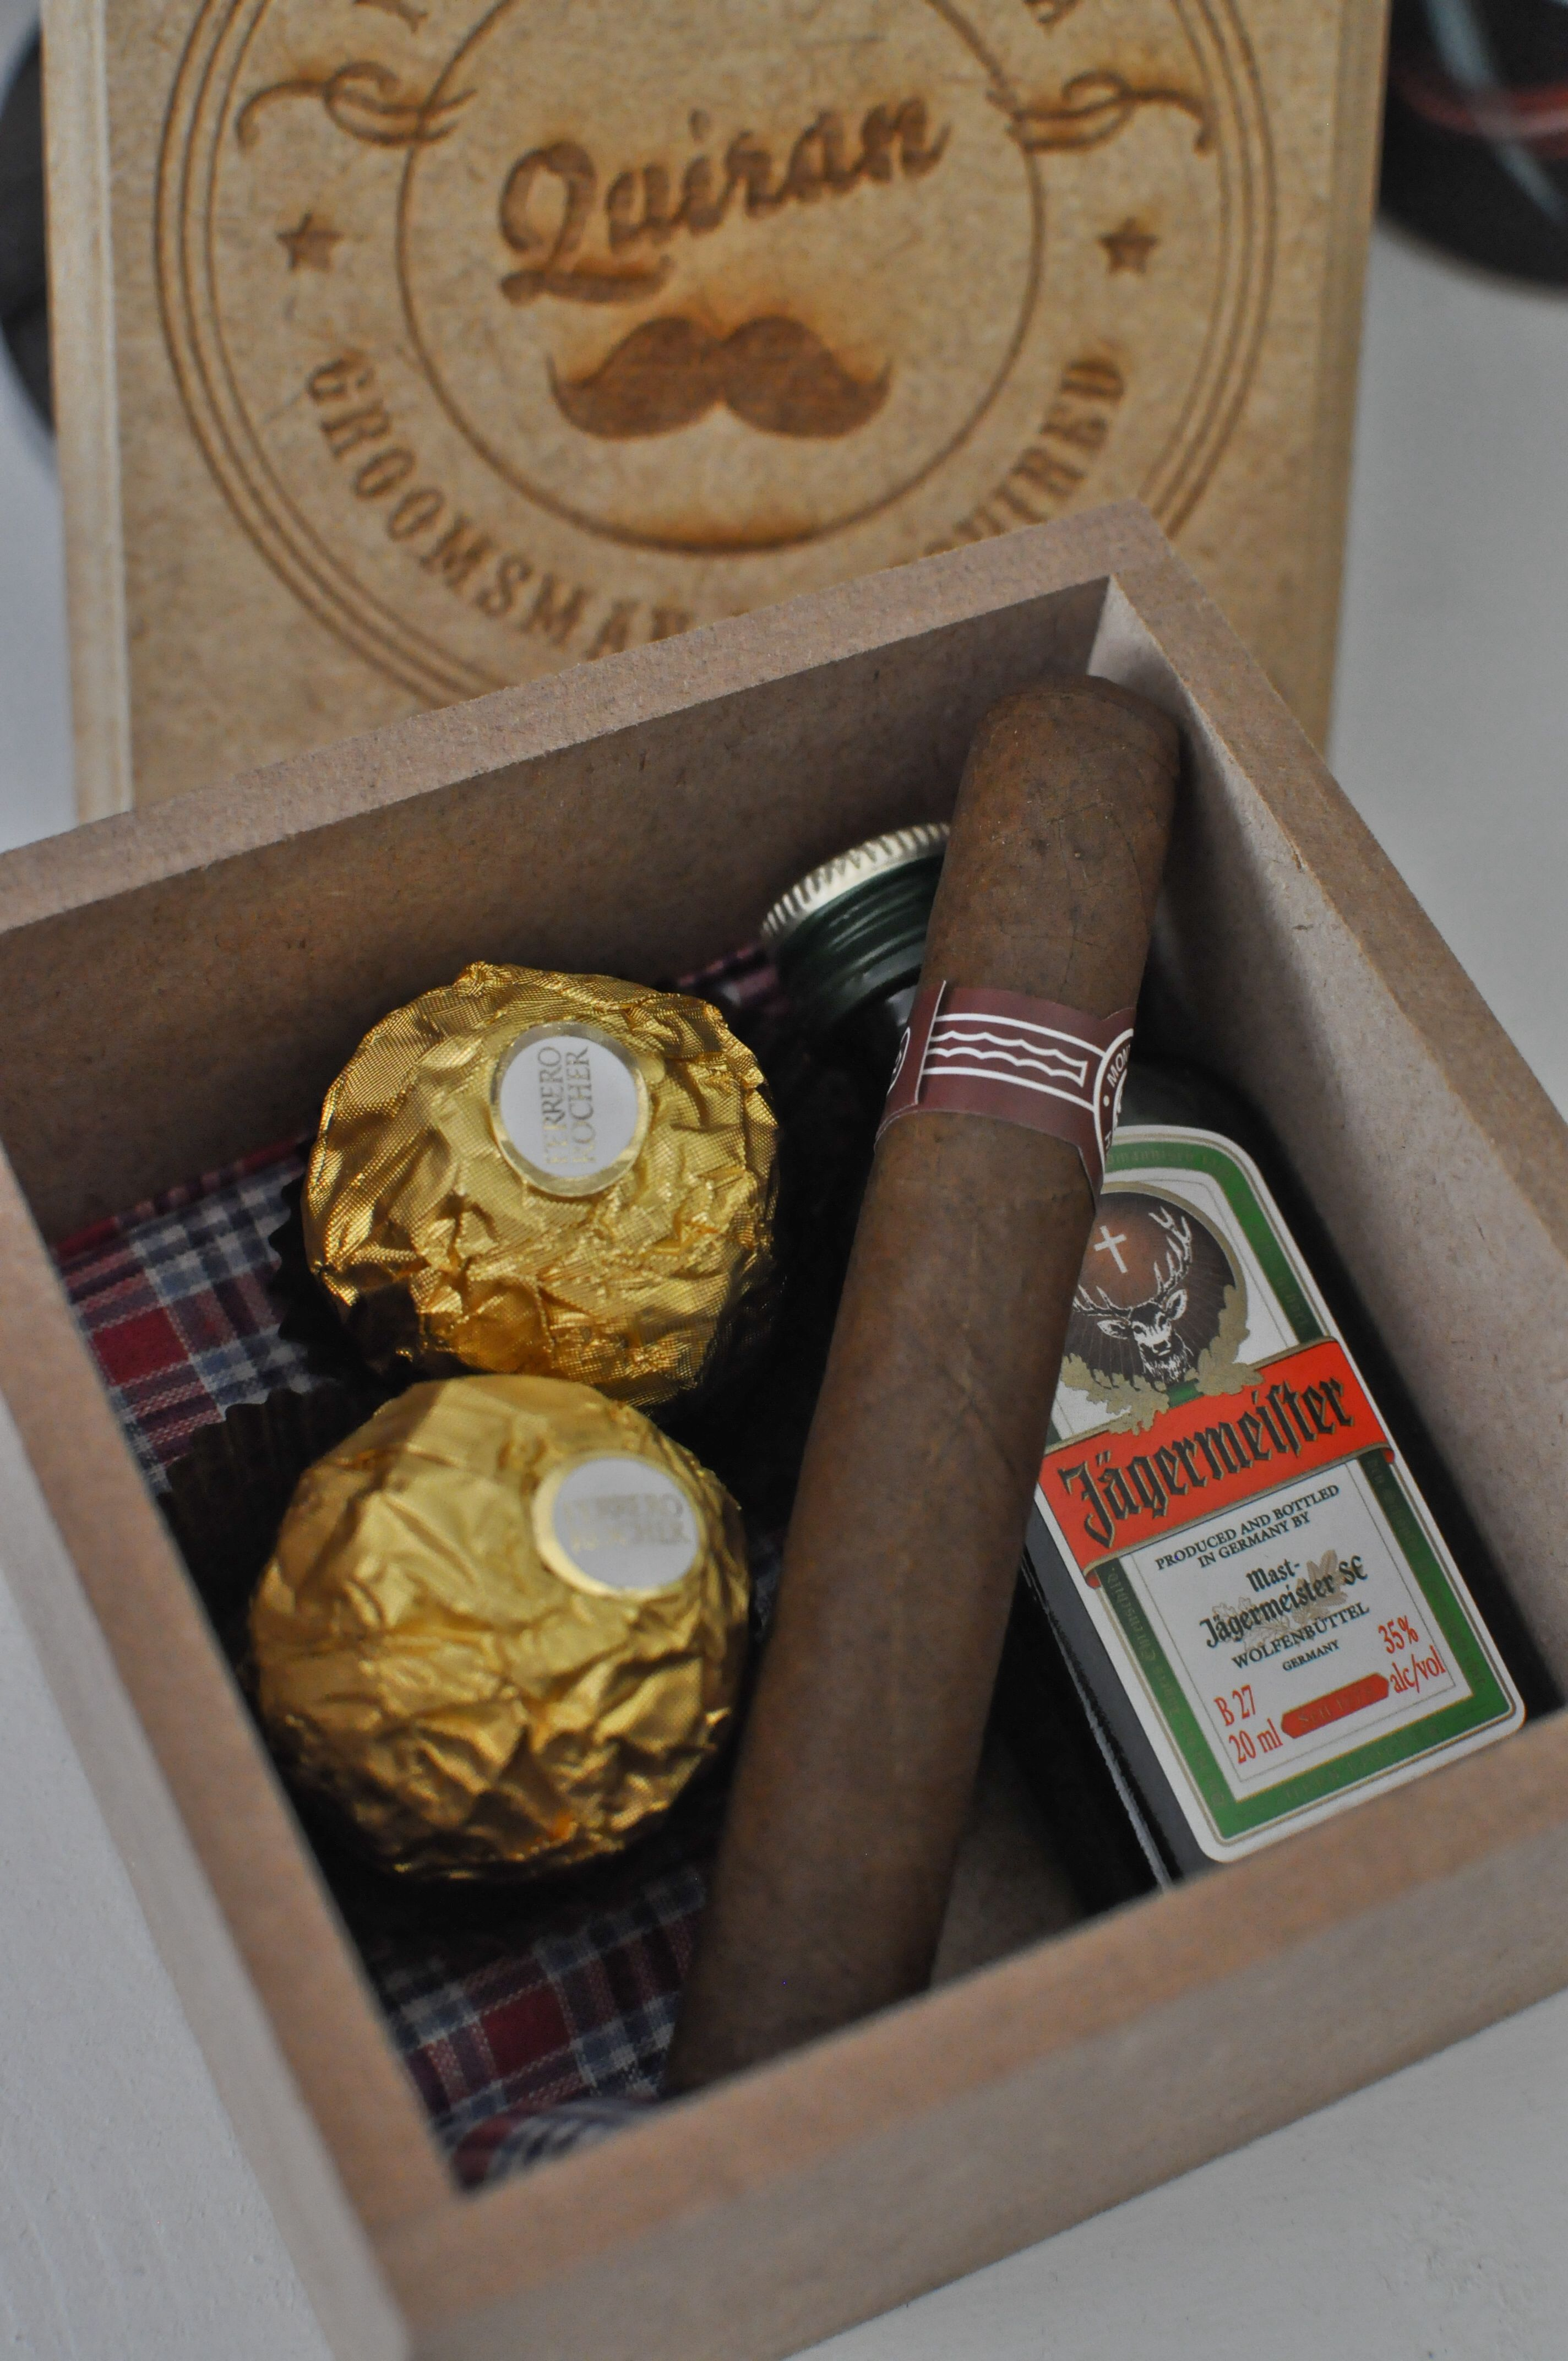 i like the idea of putting ferrero rocher in a box with a few other items not cigar not alcohol